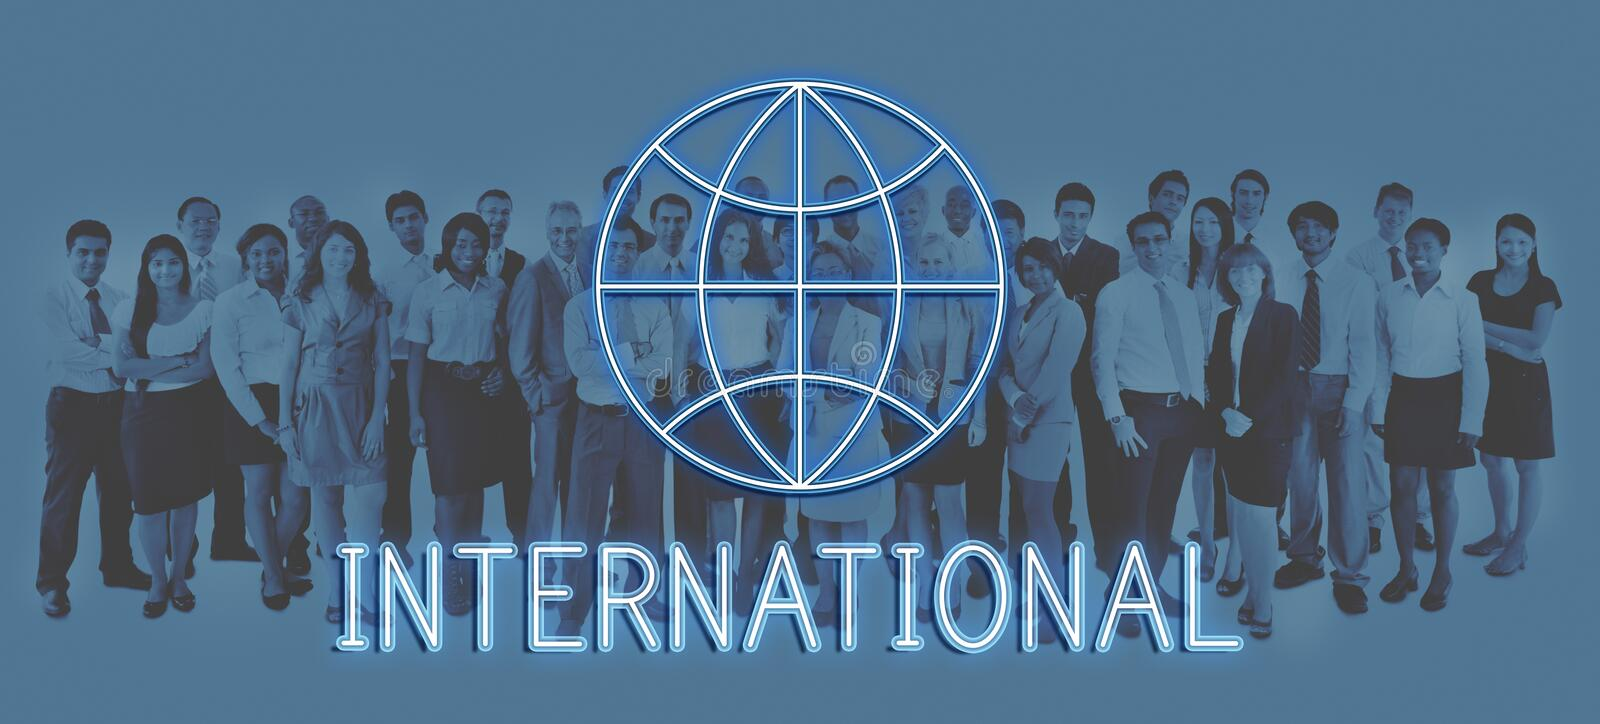 Global World Business Marketing Graphic Icon Concept royalty free stock images